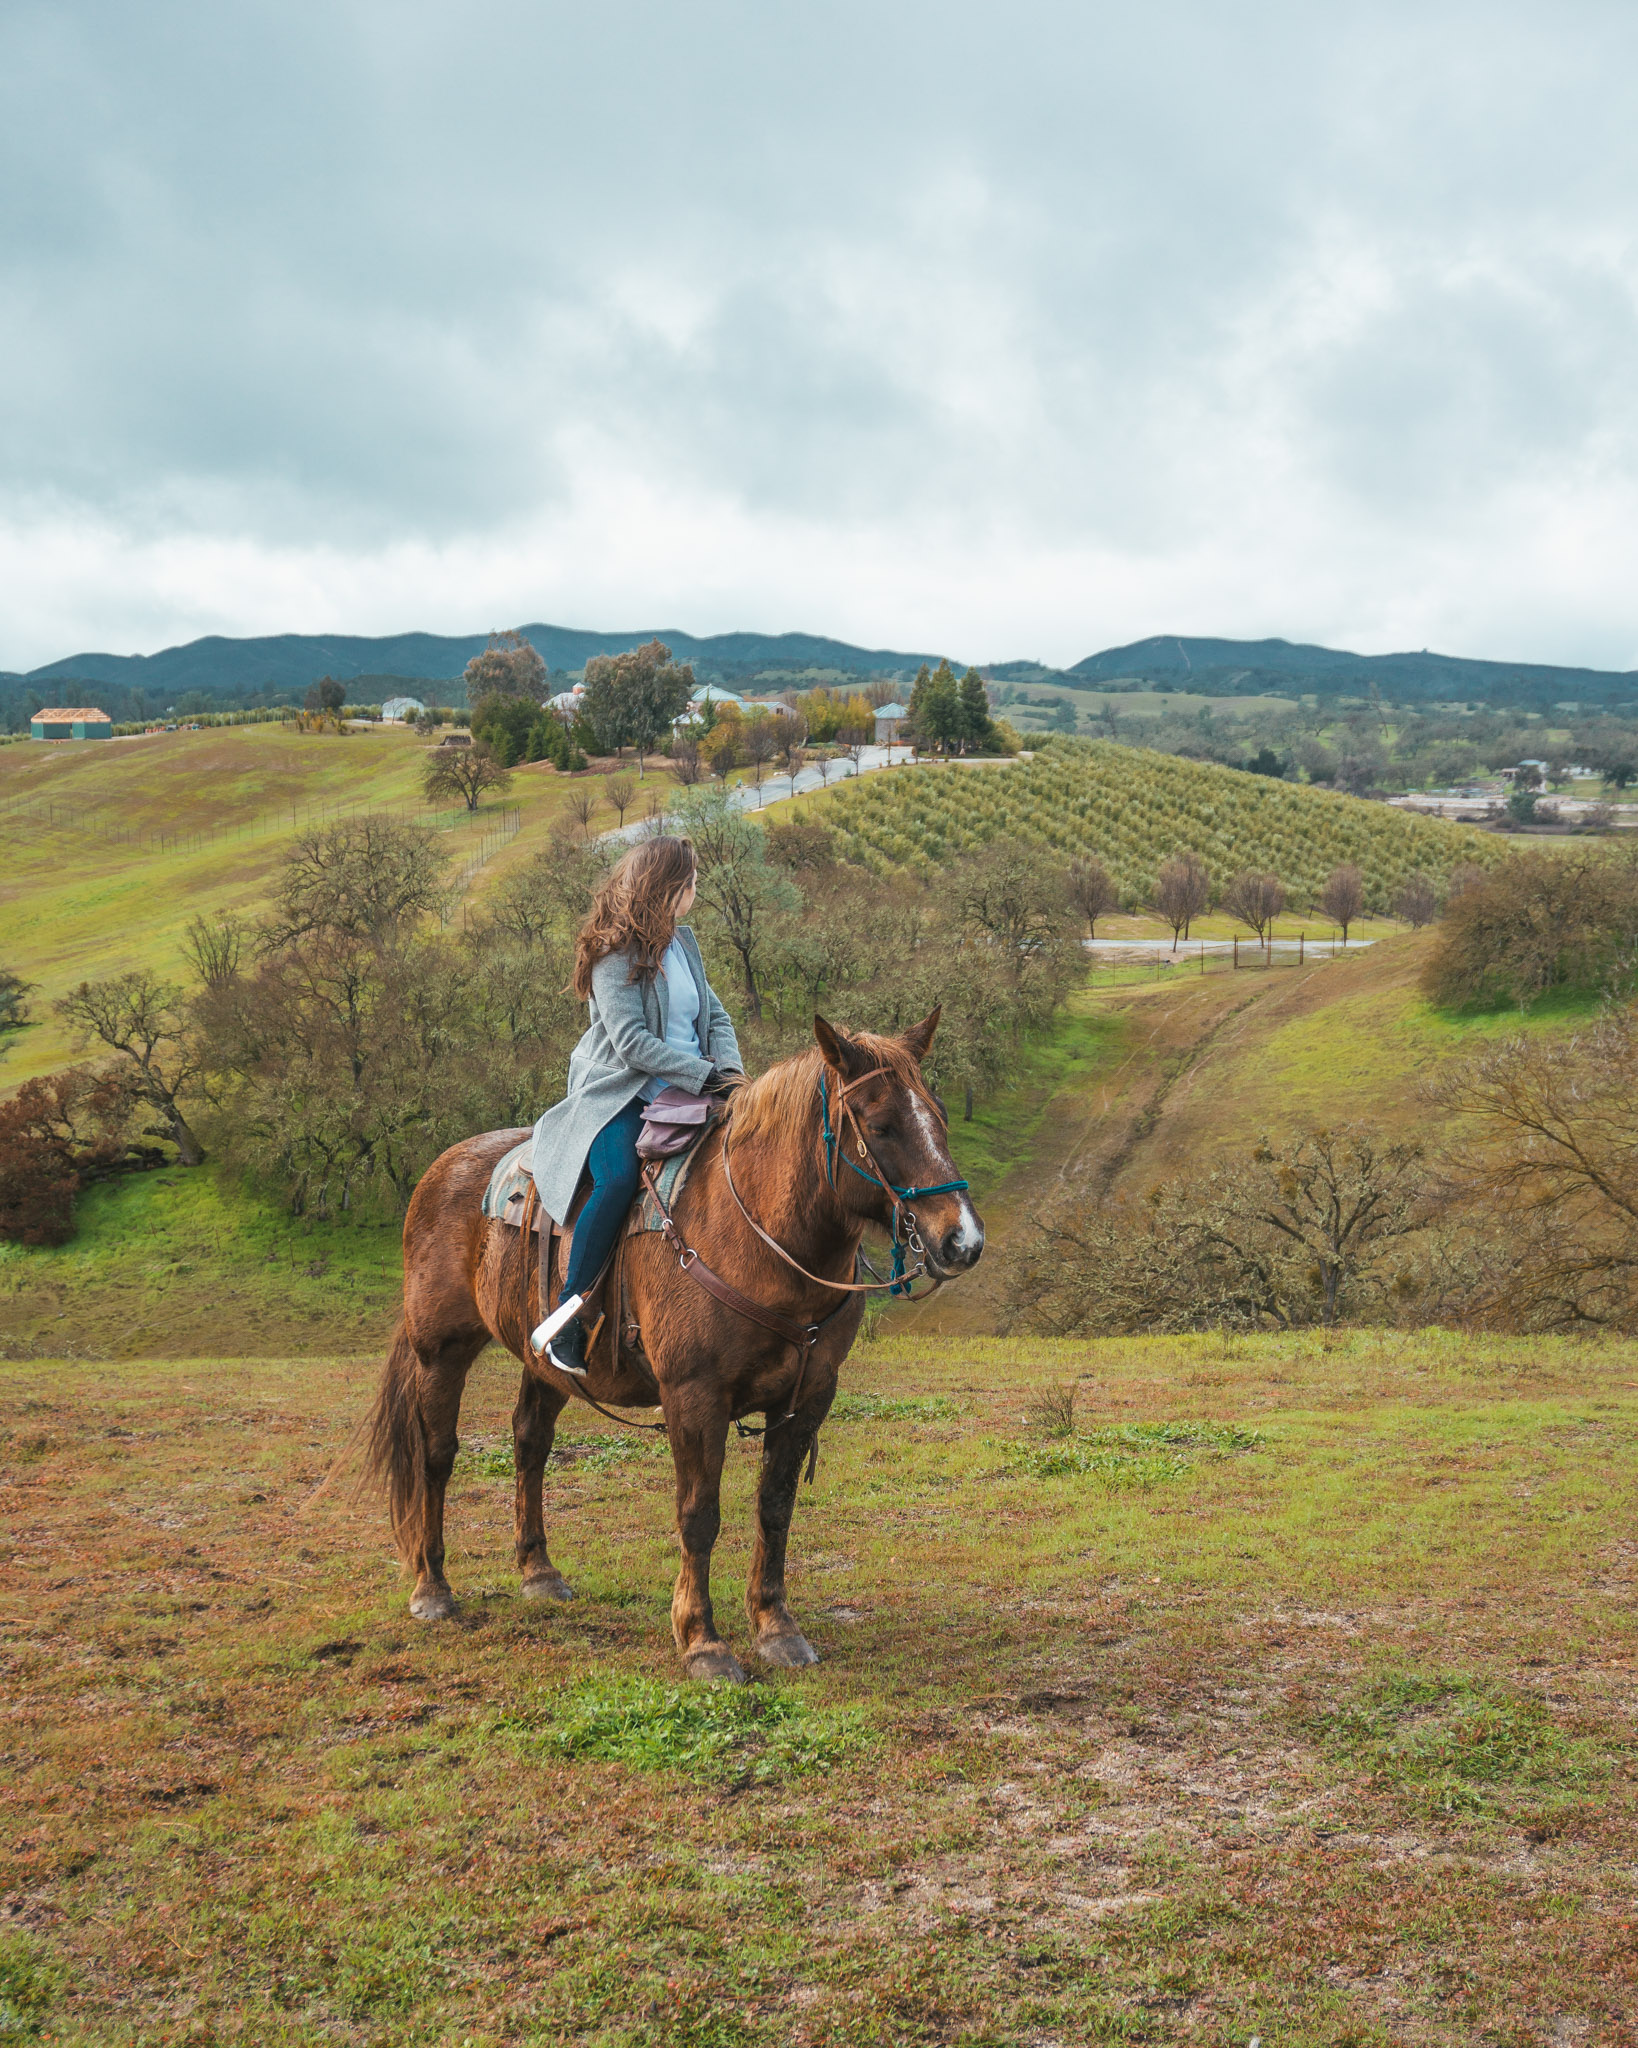 Central Coast Trailrides ~ The Most Instagrammable Spots in SLO CAL County ~ #readysetjetset #slocal #california #blogpost #travel #sanluisobispo